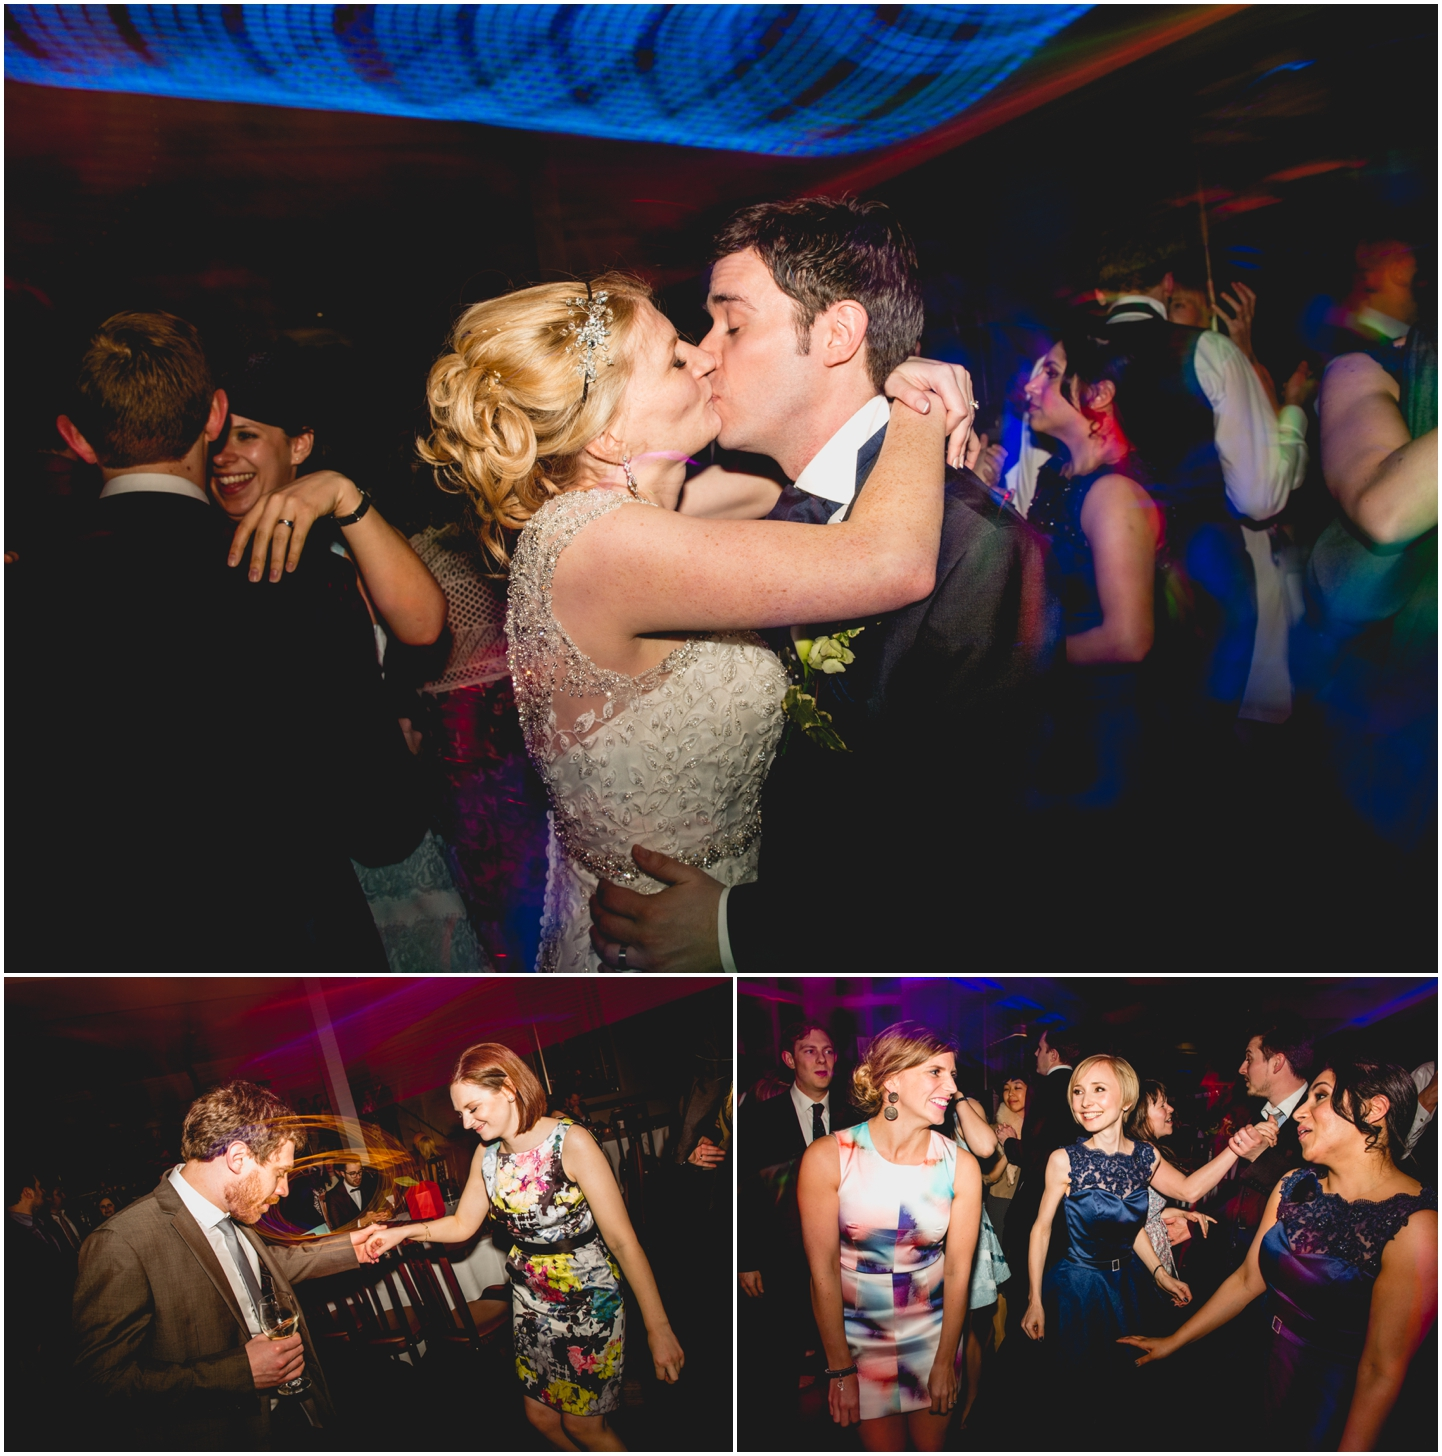 Pendrell Hall Wedding Photography by Lisa Carpenter Photography, West Midlands photographer, first dance, light trails